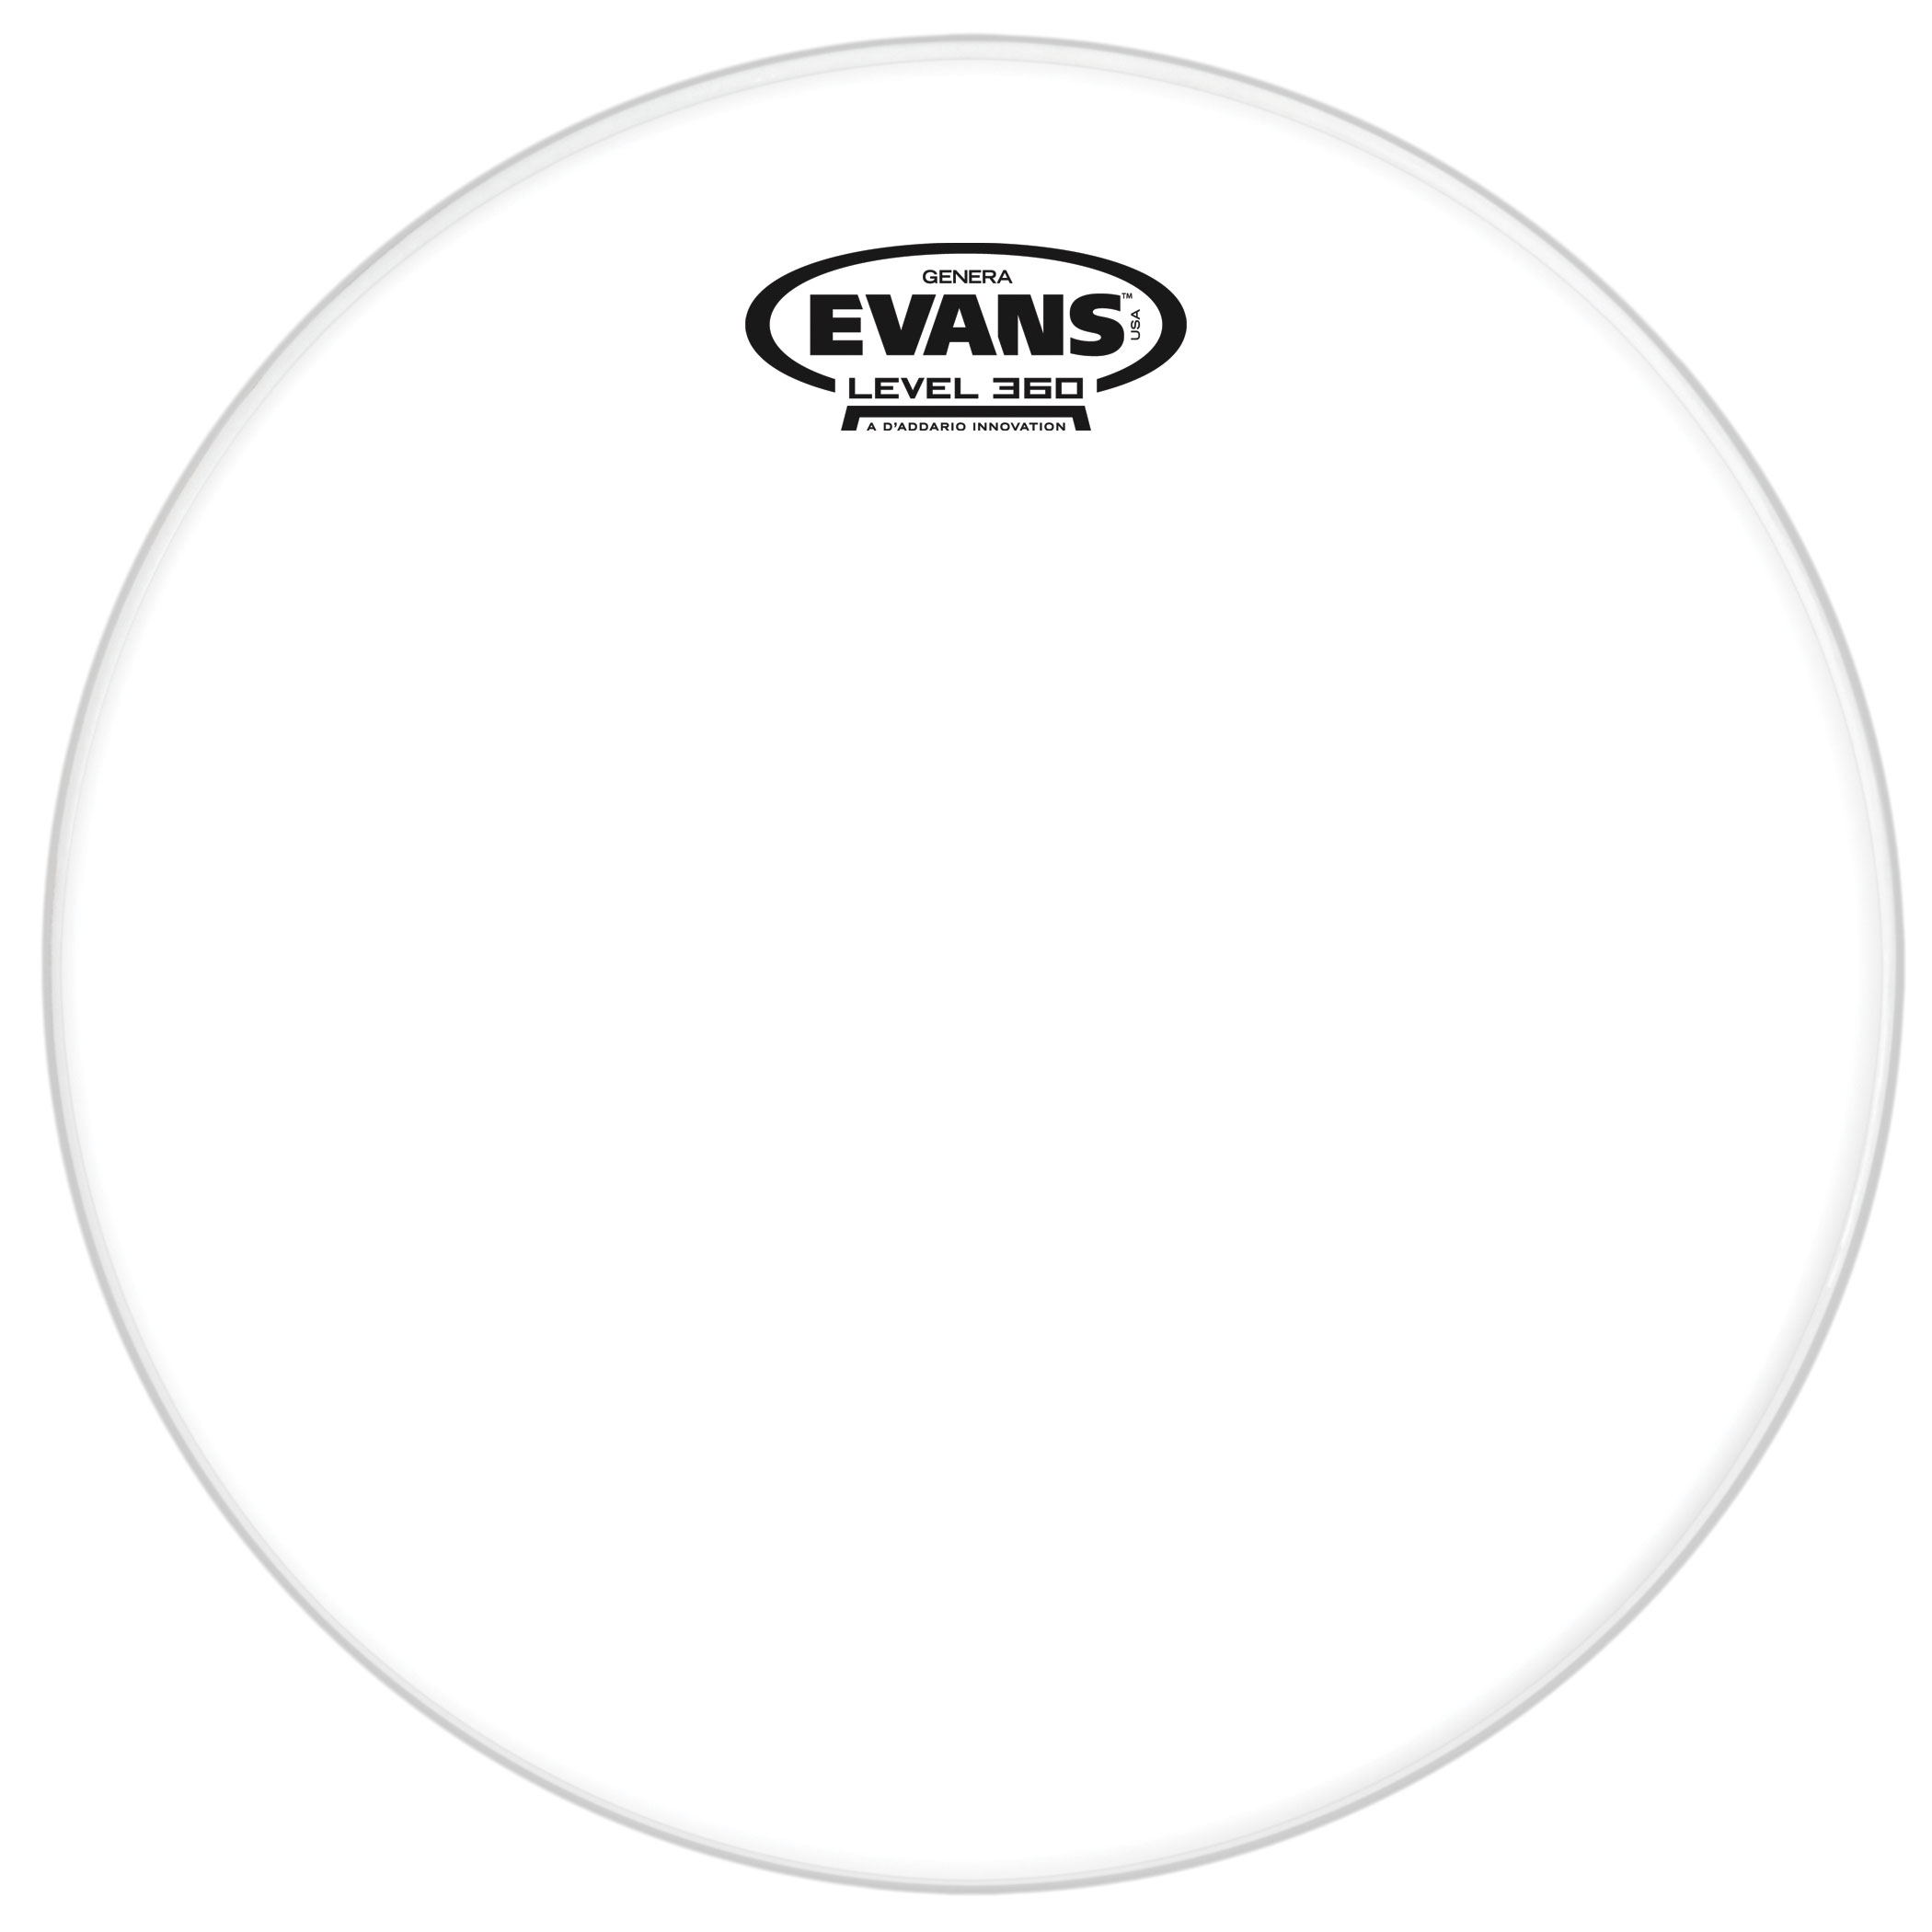 "Evans 12"" Genera Resonant Head"